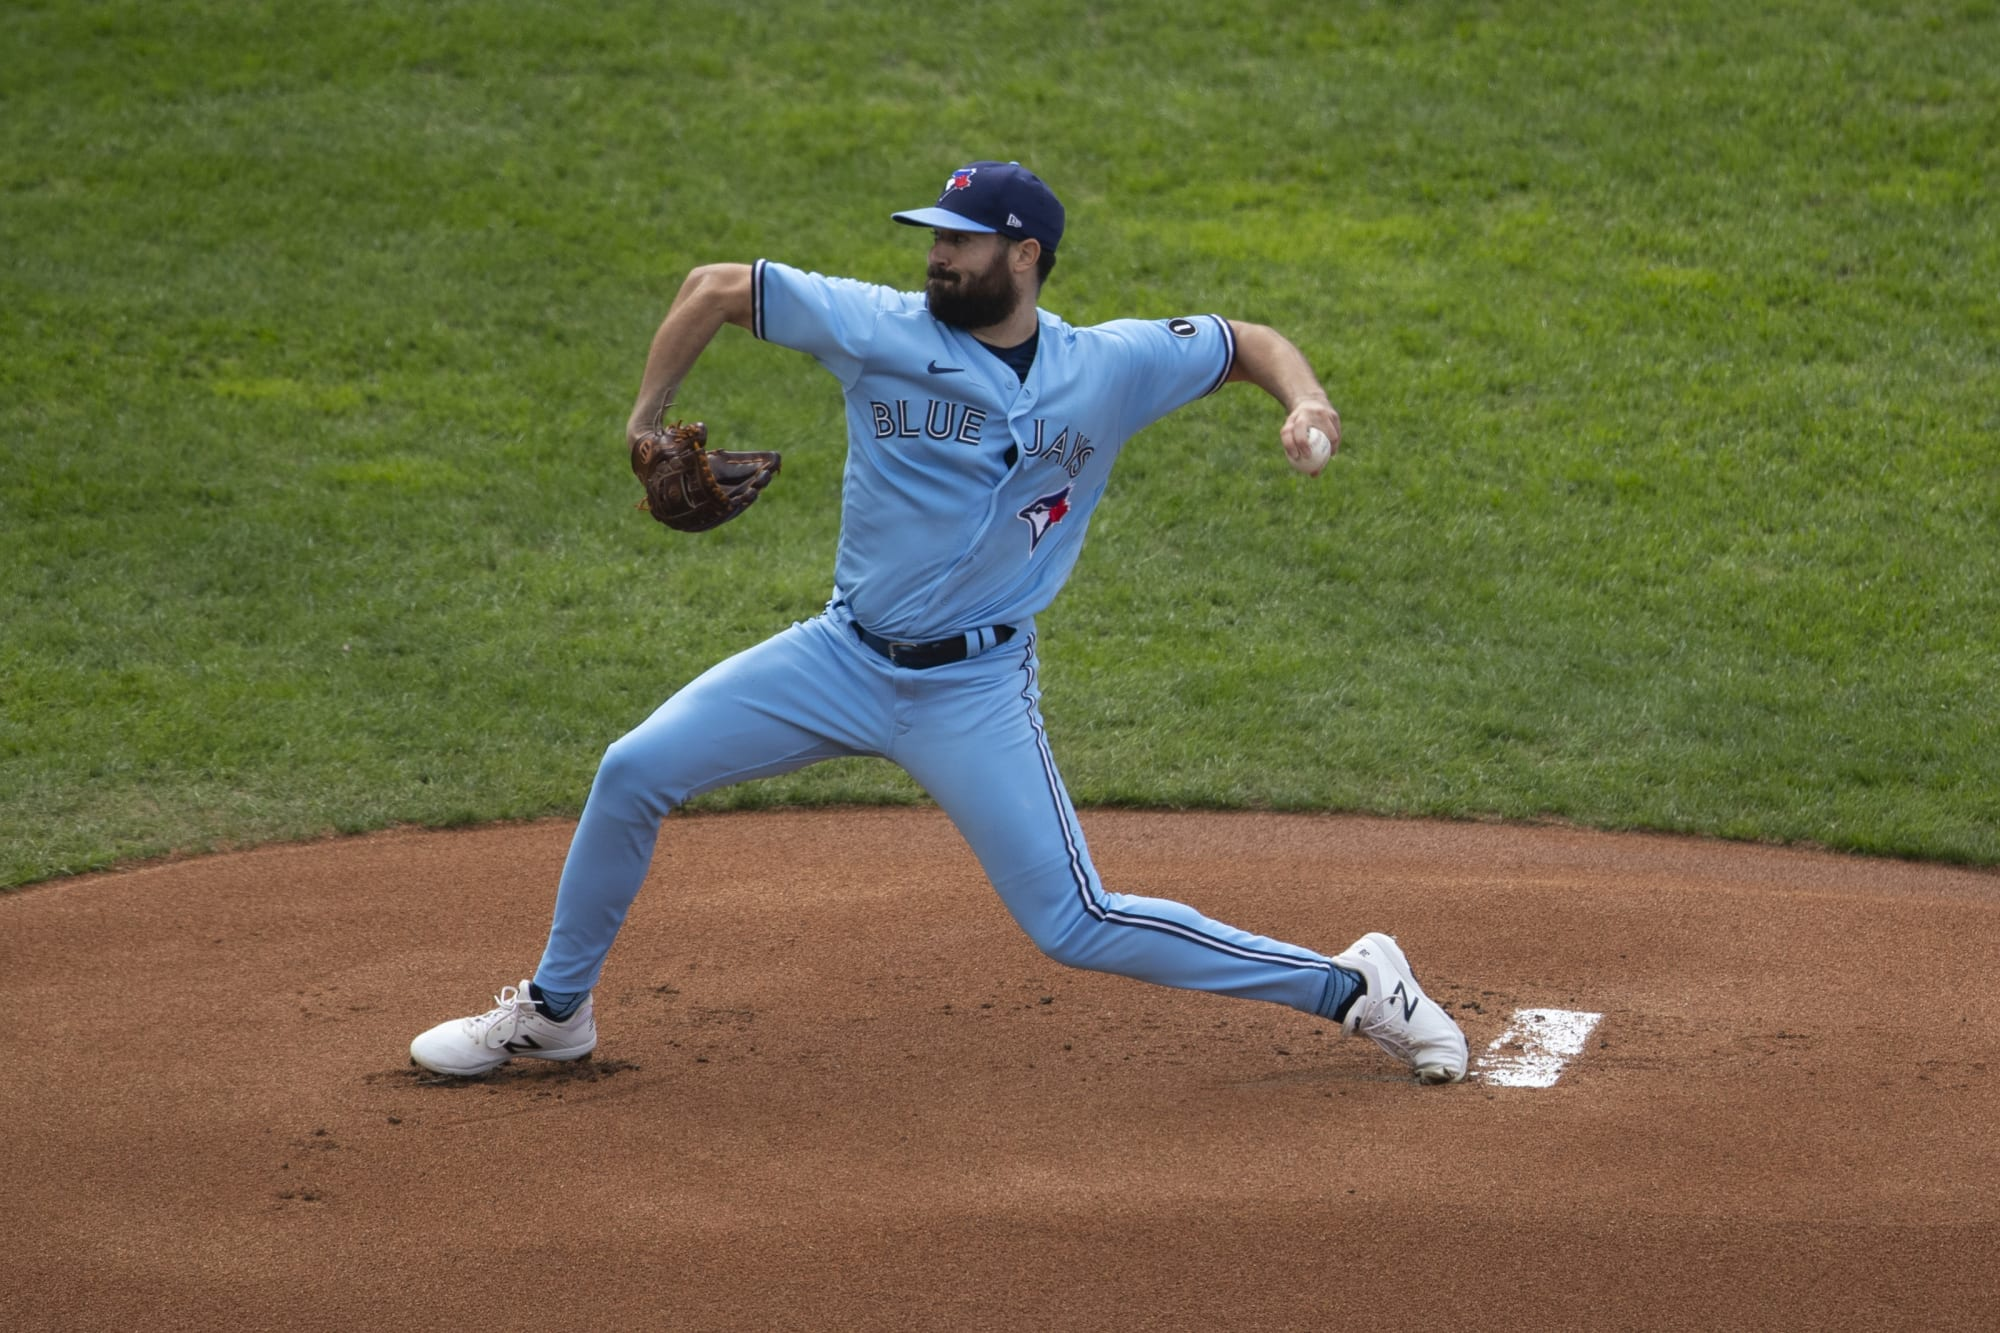 Blue Jays: Robbie Ray and the Blue Jays agree on a 1 year, M deal – Jays Journal